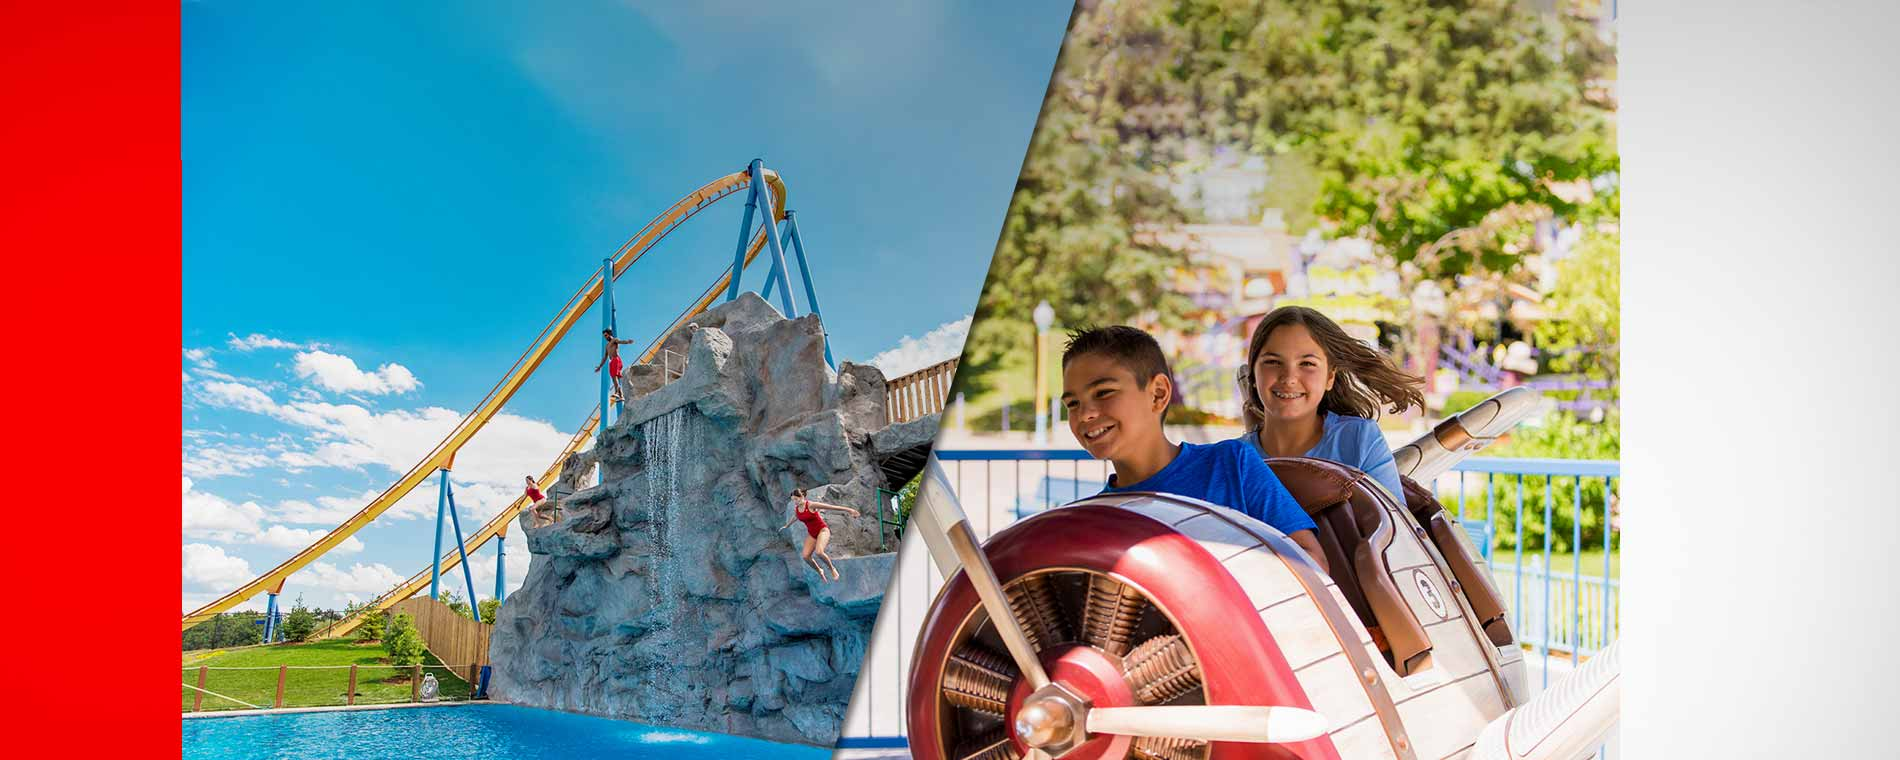 New Rides and Attractions Coming to Canada's Wonderland Amusement Park